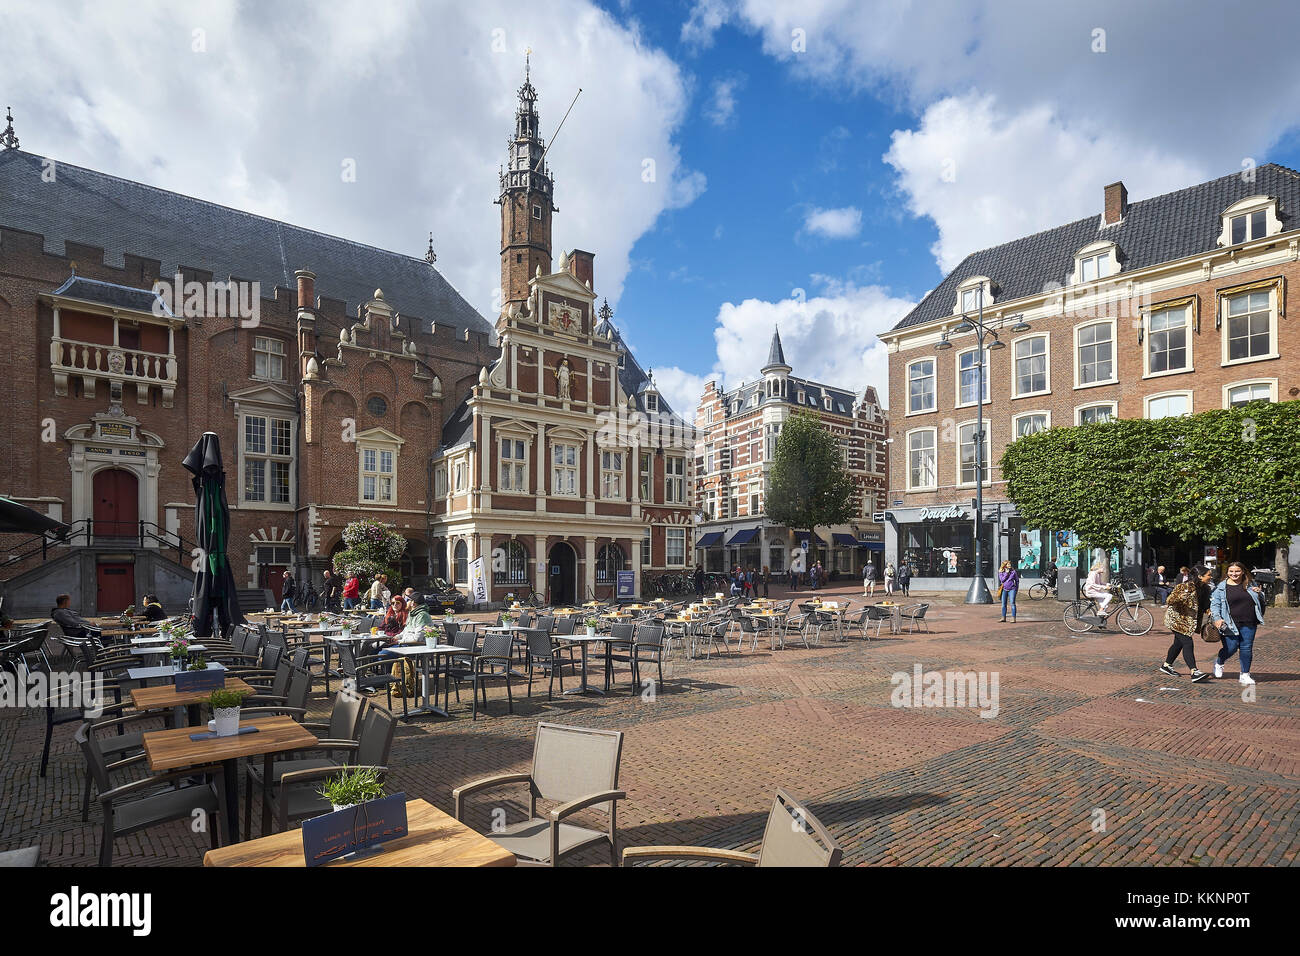 Town Hall at the Grote Markt, Haarlem, North Holland, Netherlands - Stock Image